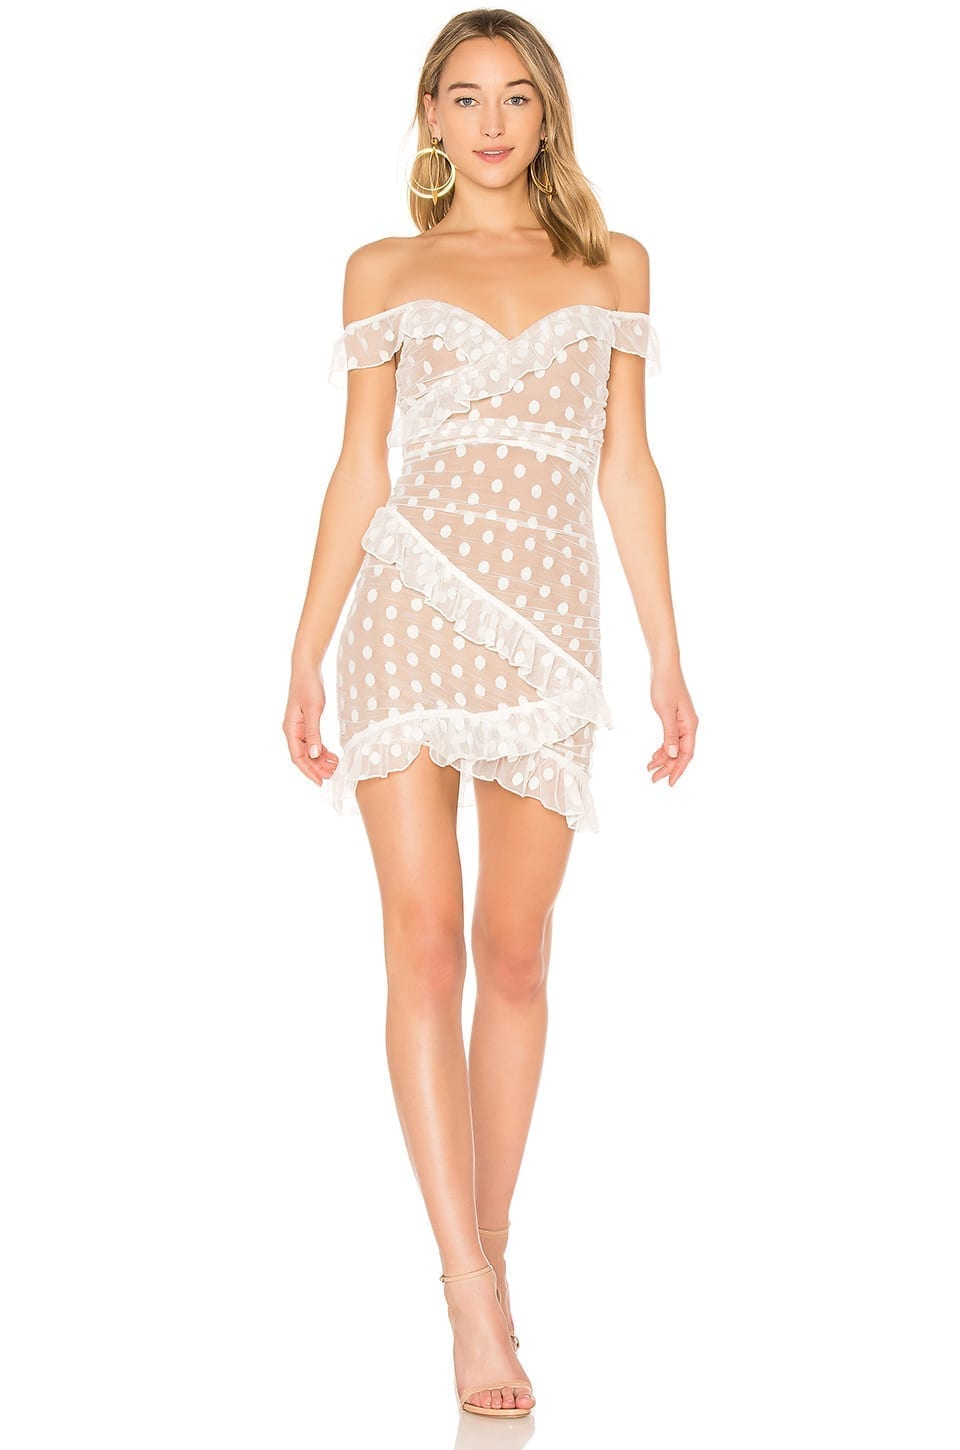 MAJORELLE Bandit White Dress